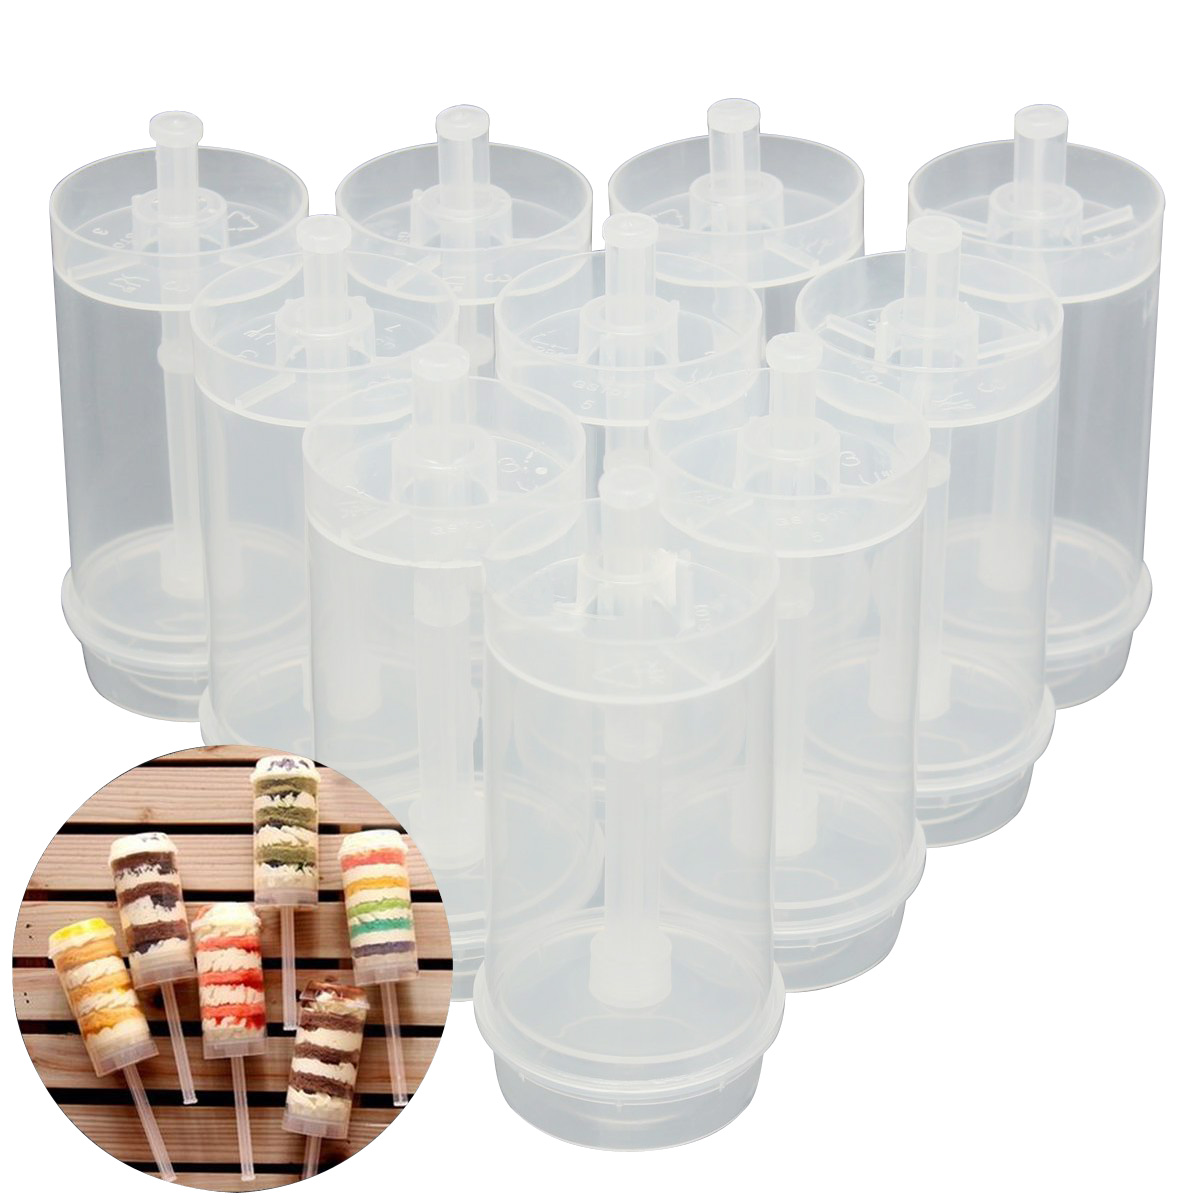 50x Cakes Dessert Push Up Pop Containers Shooter Pop for Party Use